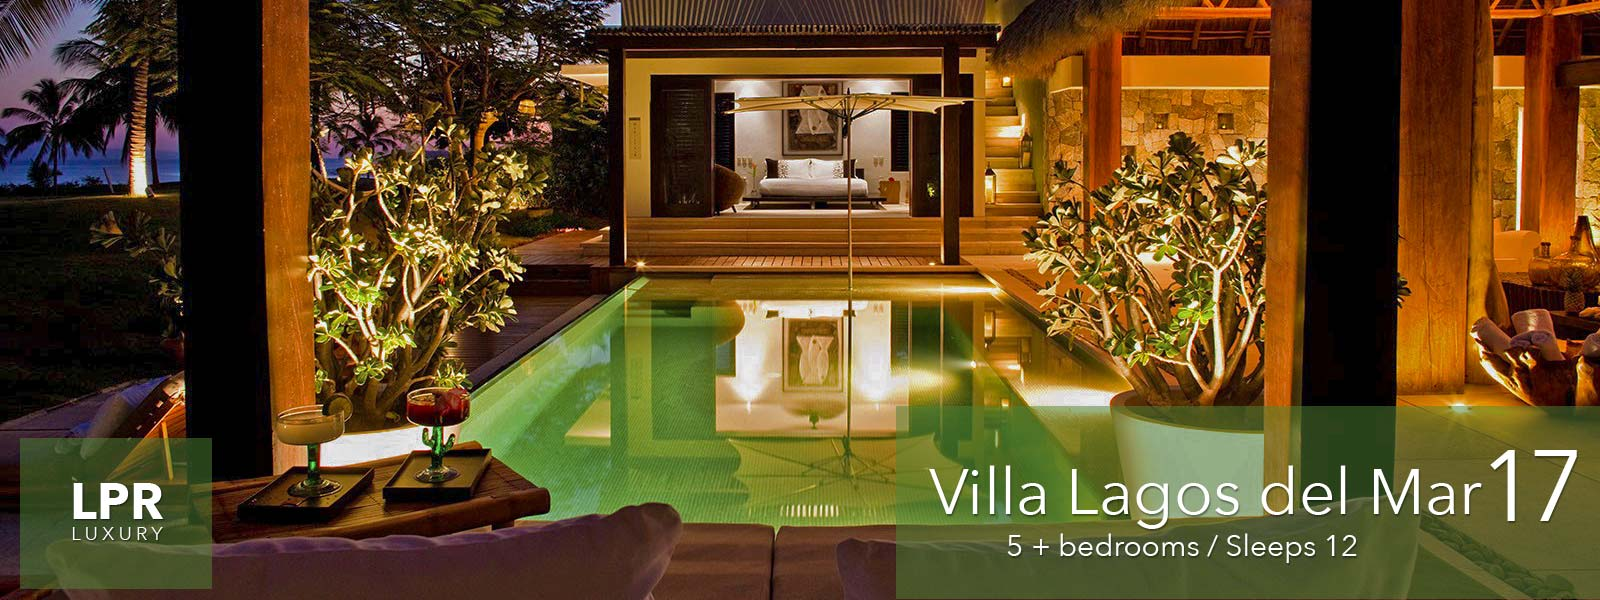 Villa Lagos del Mar 17 - Punta Mita Resort - Luxury Vacation Rentals